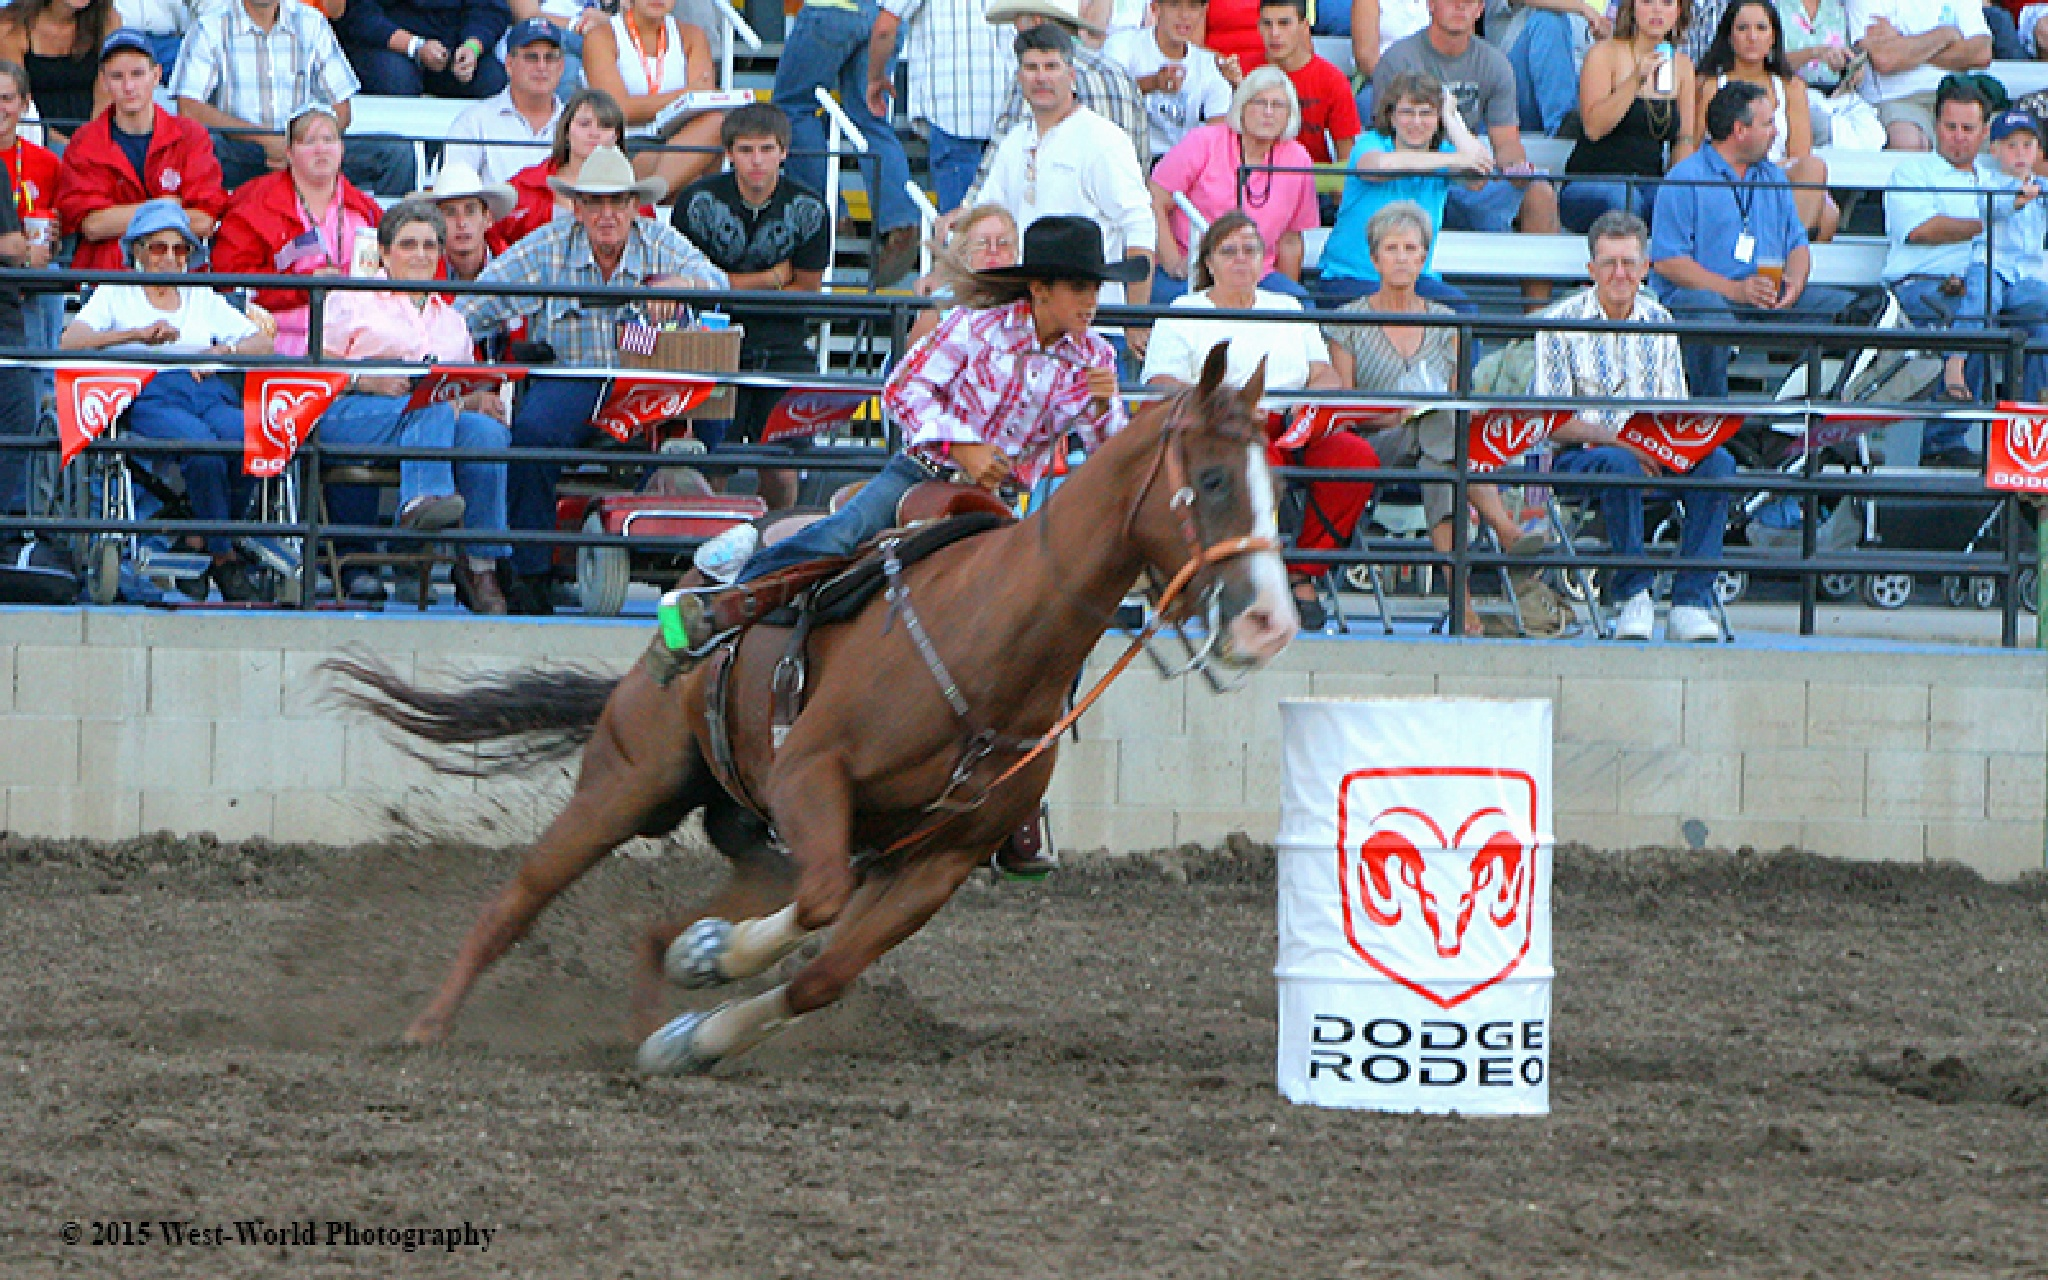 Rodeo barrel racing by locationshooter